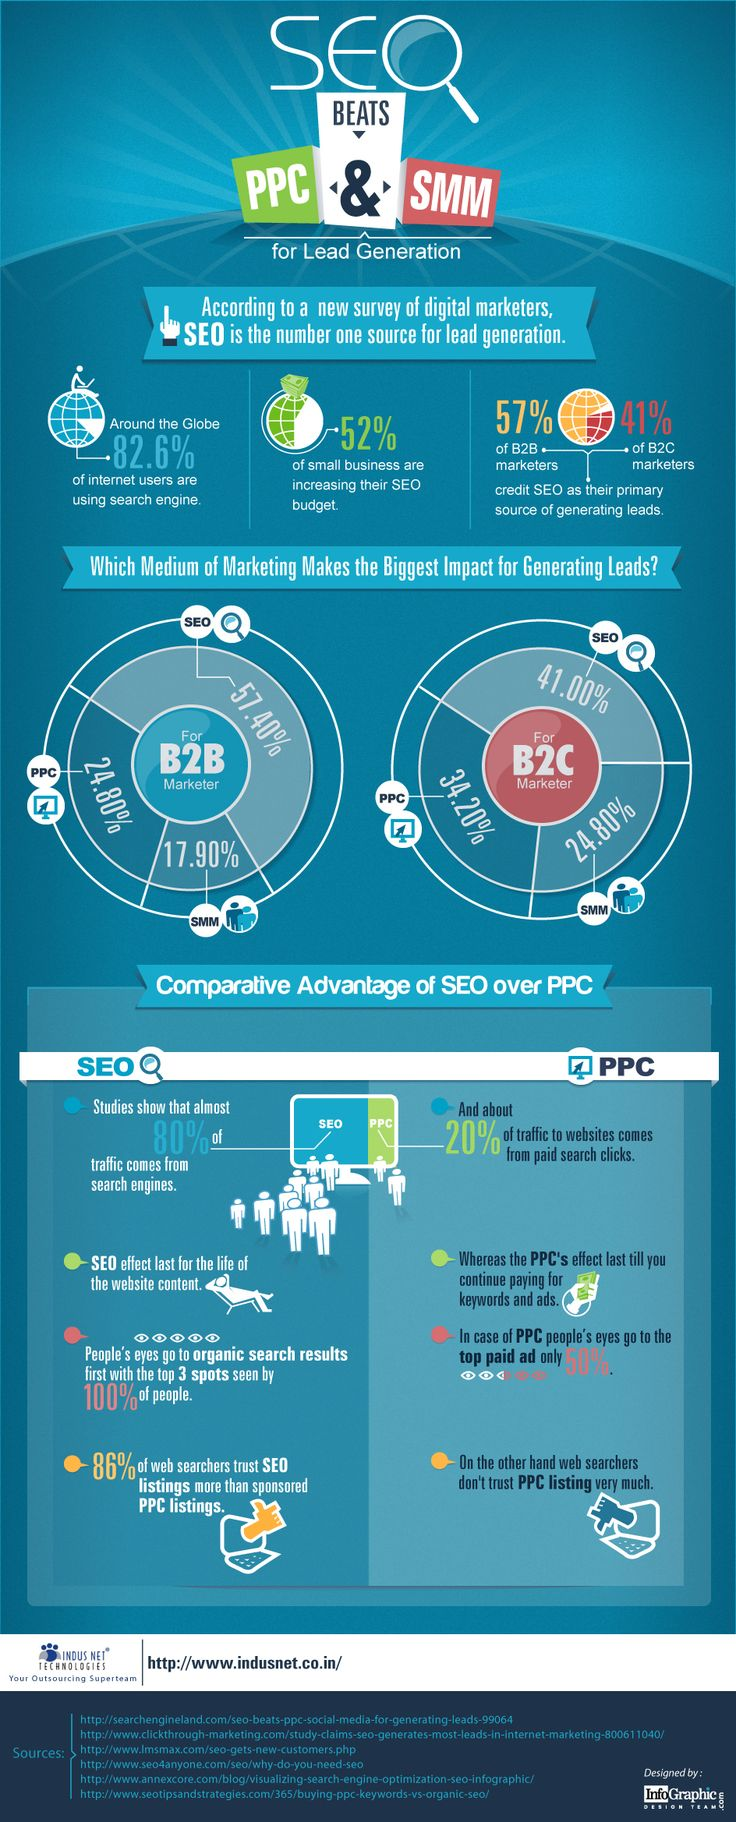 Lead generation? SEO is better than PPC or SMM.  http://www.InfoGraphicDesignTeam.com  http://www.Indusnet.co.in